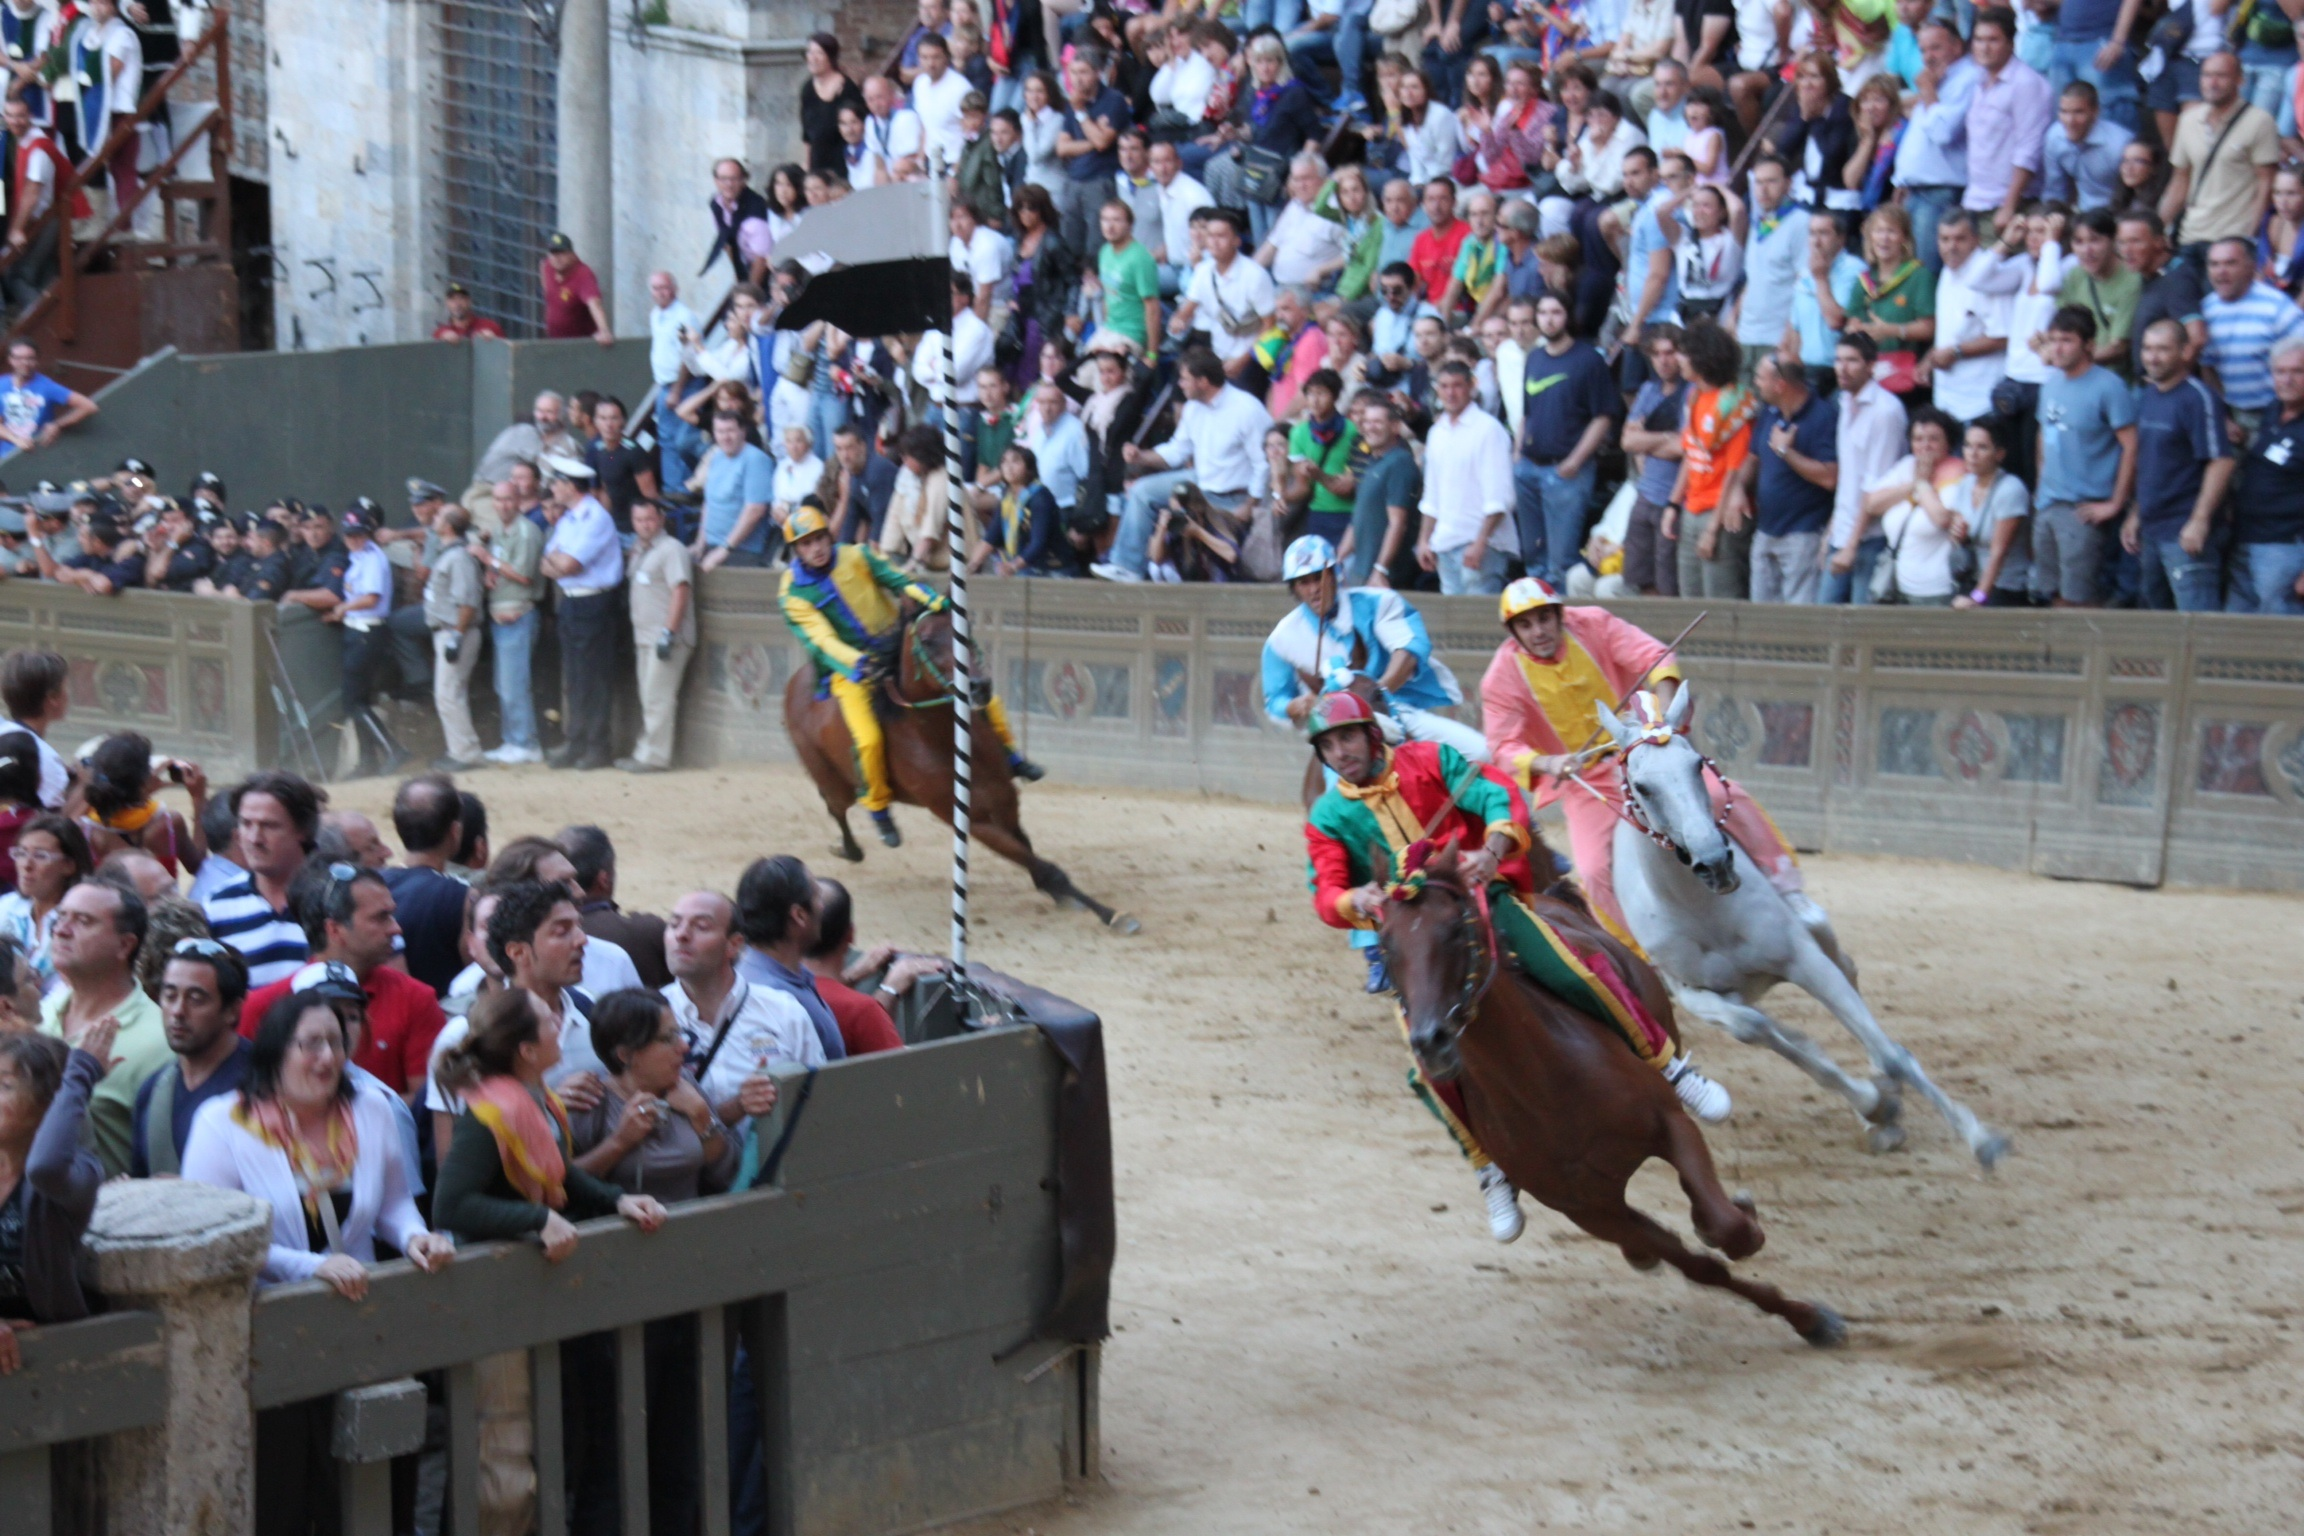 Ten horses and their riders compete in the annual Palio of Siena, Tuscany